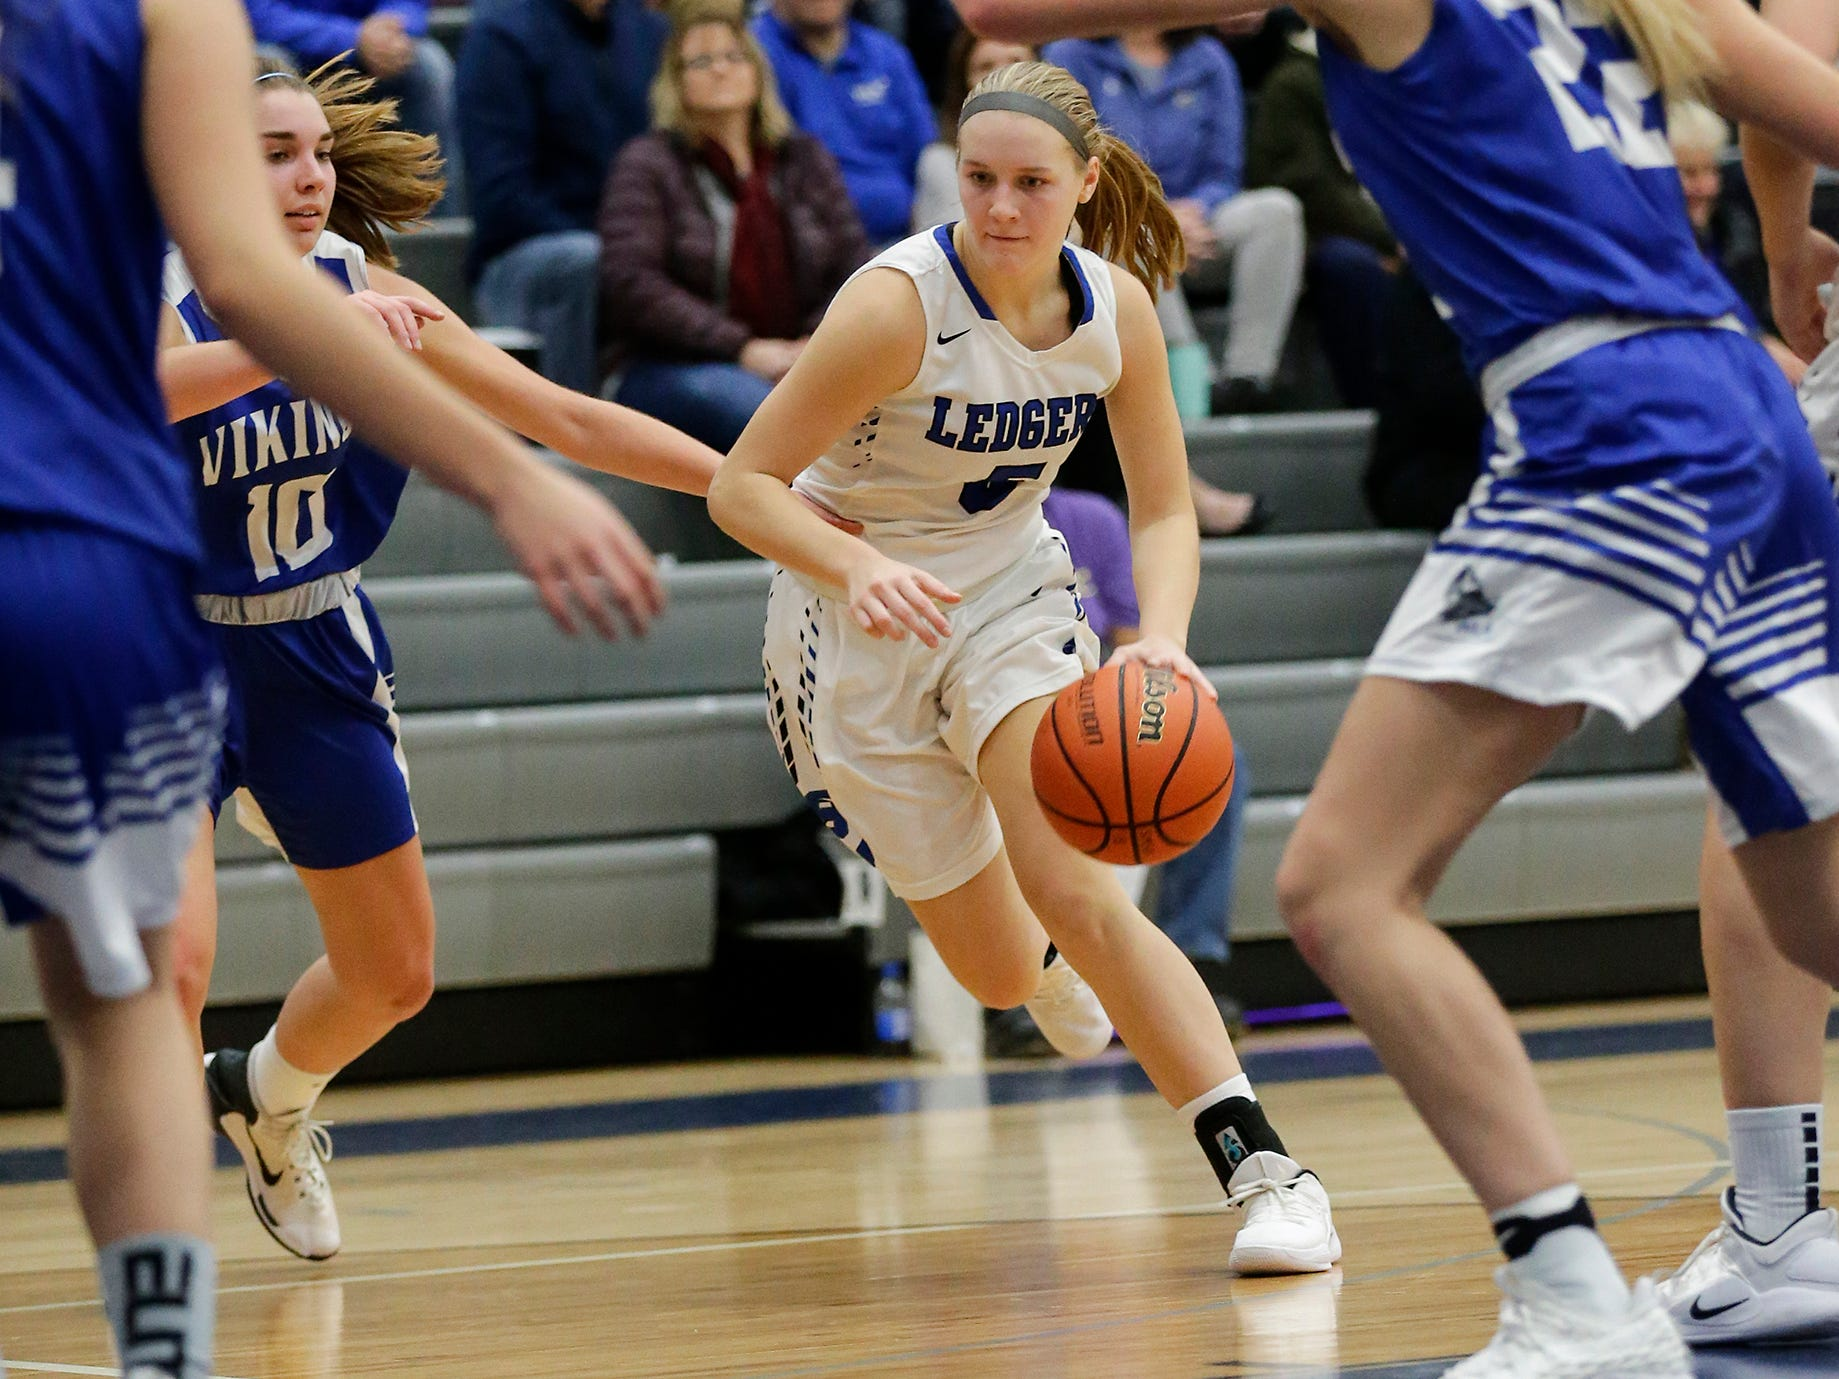 St. Mary's Springs Academy girls basketball's Gracie Rieder dribbles the ball against Winnebago Lutheran Academy during their game Tuesday, December 18, 2018 in Fond du Lac. Winnebago Lutheran Academy won the game 58-54. Doug Raflik/USA TODAY NETWORK-Wisconsin